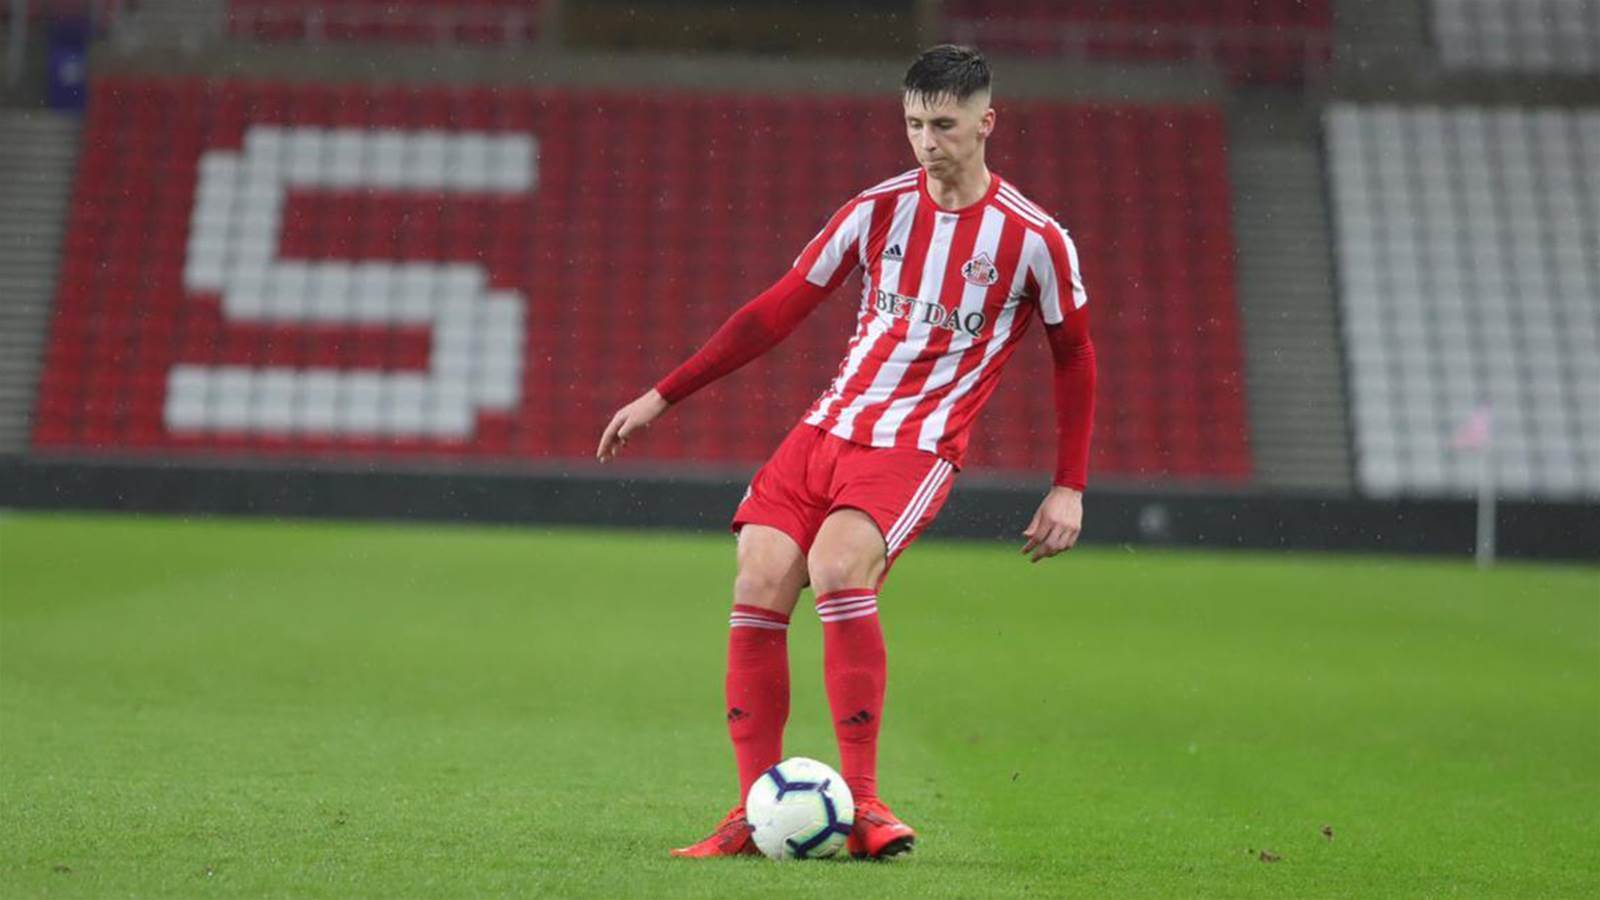 Meet the ex-NSL striker's son out to star with Sunderland